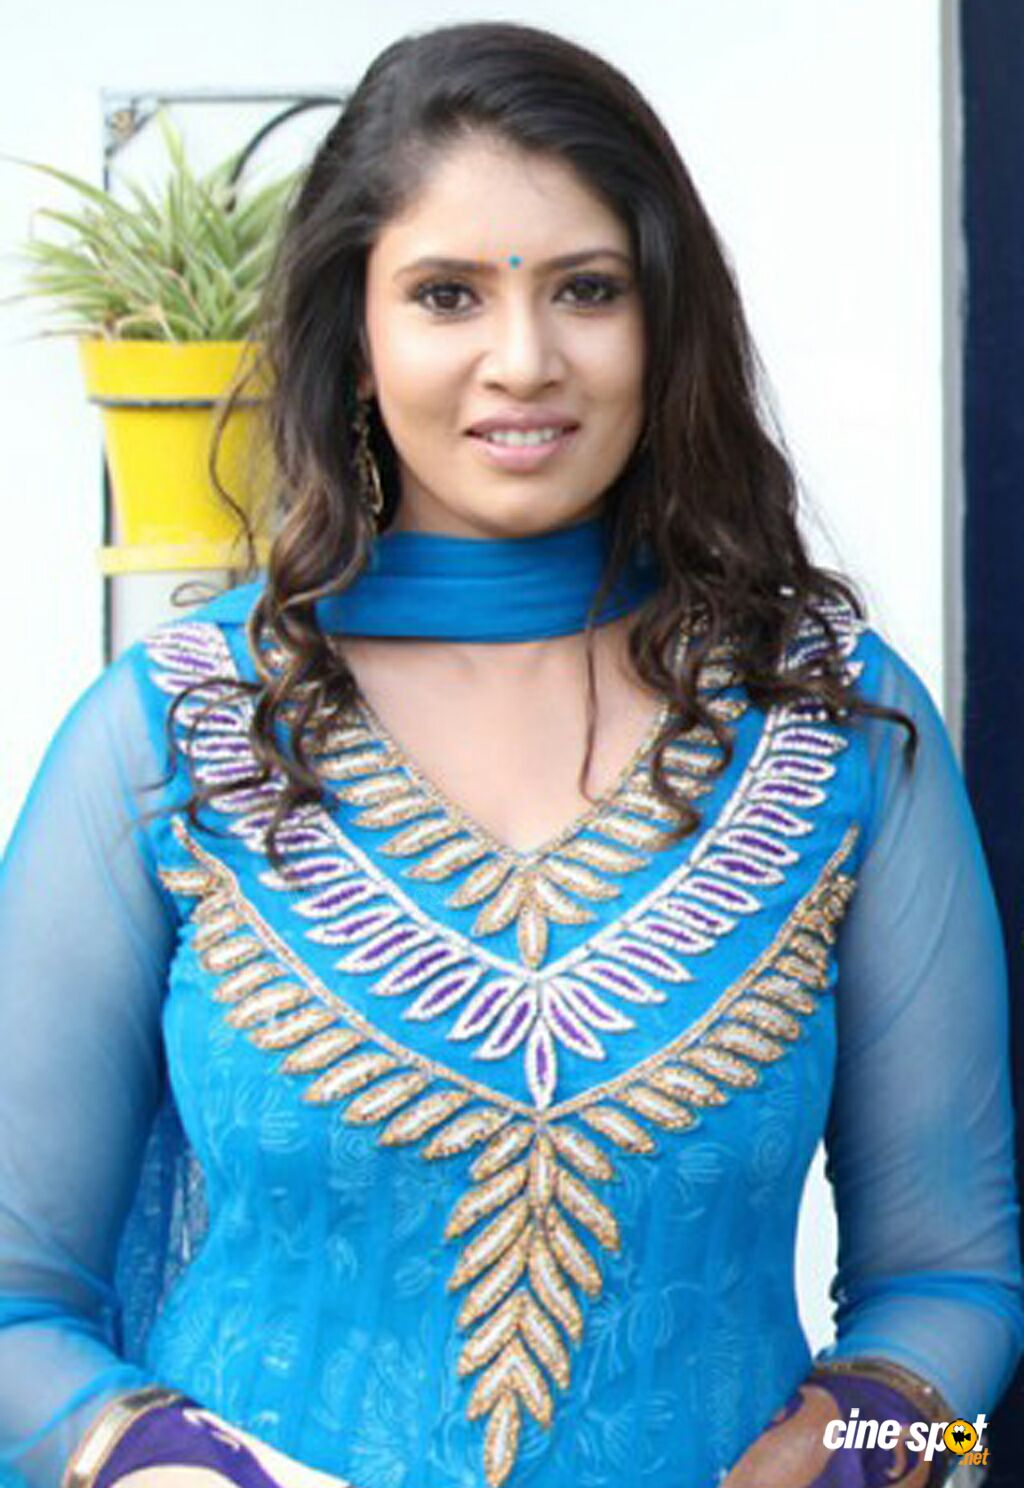 sanghavi groupsanghavi diamonds inc, sanghavi hot, sanghavi marriage, sanghavi marriage photos, sanghavi group, sanghavi college of engineering, sanghavi engineering, sangavi hot pics, sanghavi exports, sanghavi diamonds, sanghavi movers, sanghavi solitaire, sanghavi actress marriage photos, dilip shanghvi, sanghavi sujay, sanghavi actress wedding photos, sanghavi enterprises